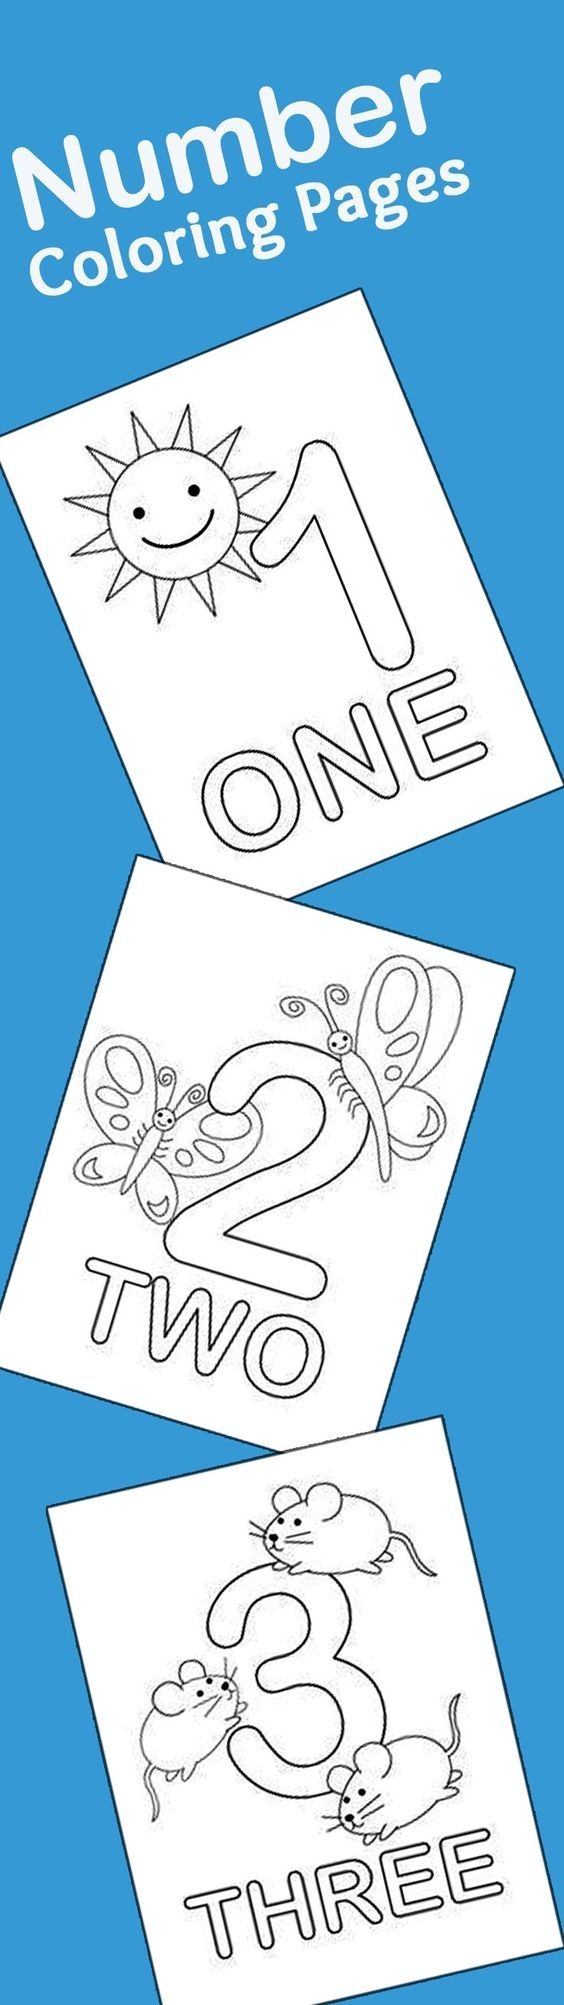 children u0027s books about counting and numbers count books and